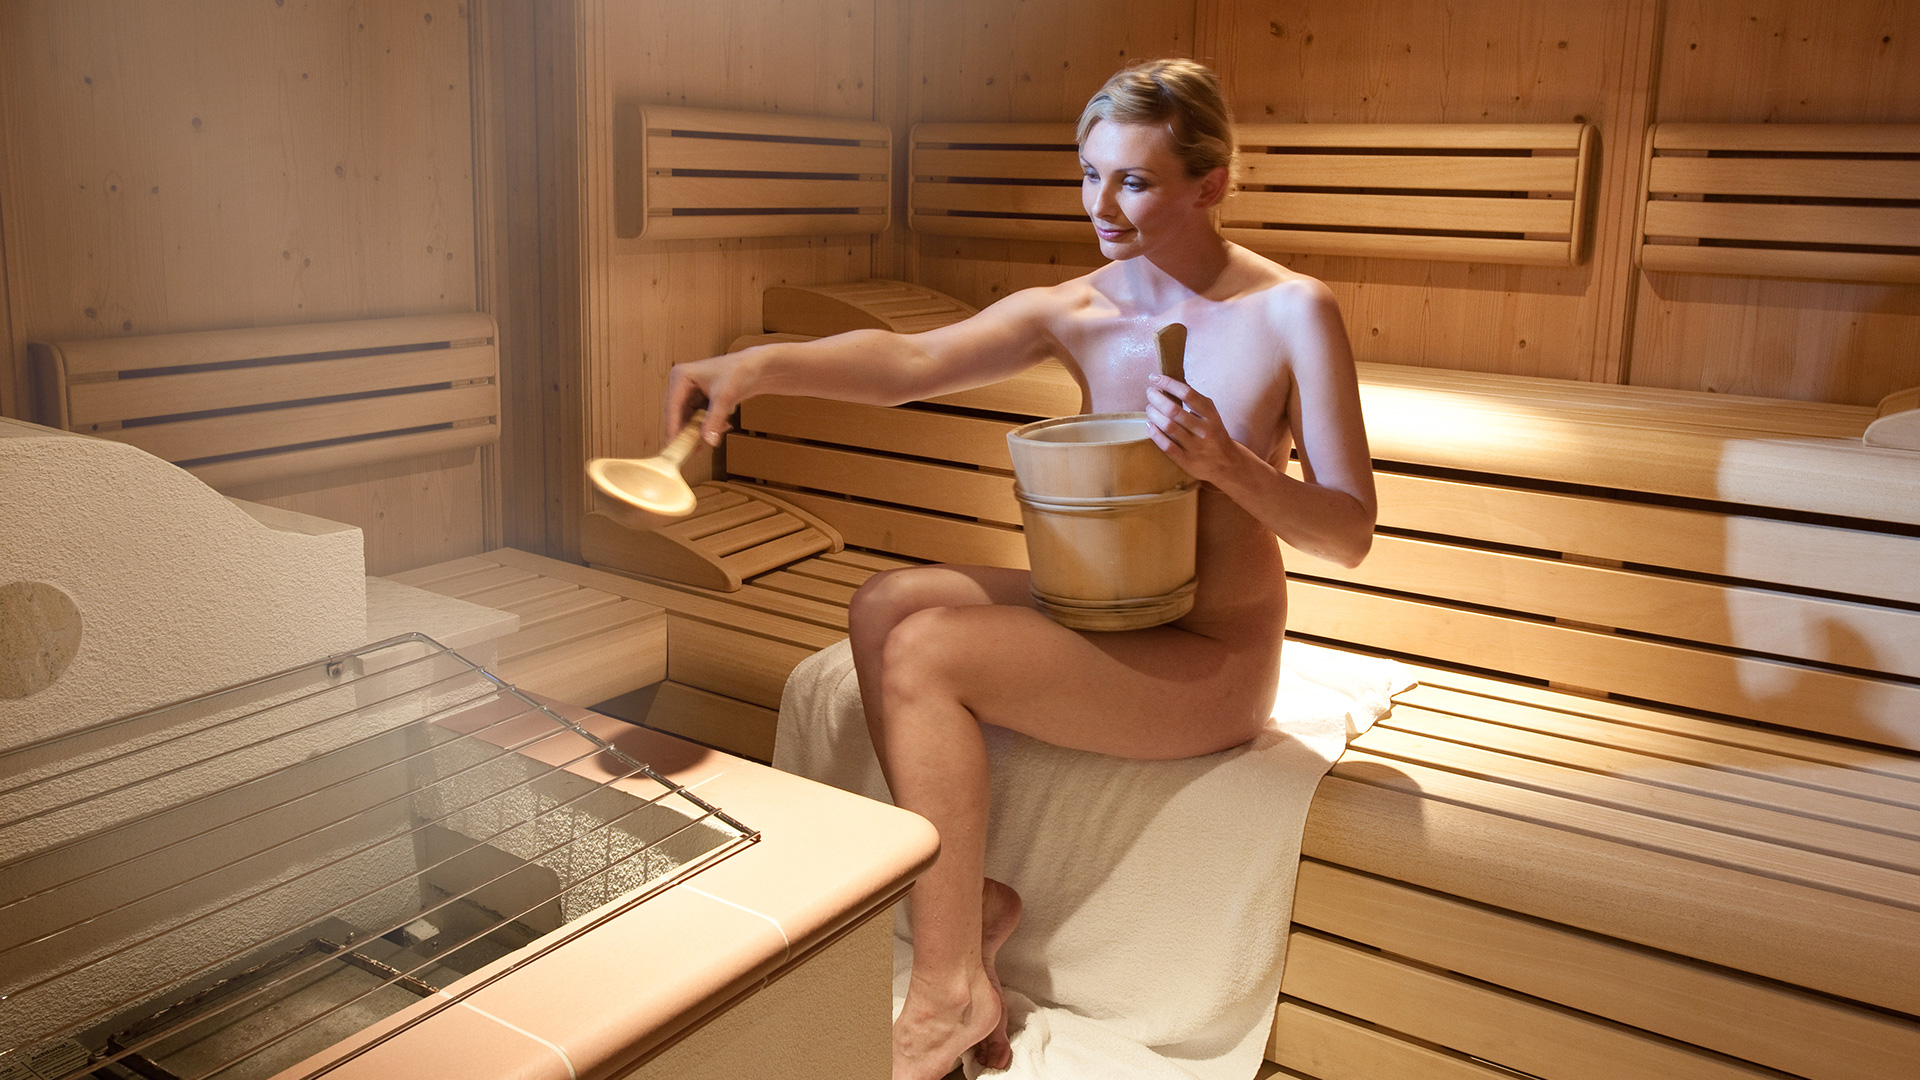 I Stripped Down With Strangers For A Real Finnish Sauna Experience Here's Why You Should Too